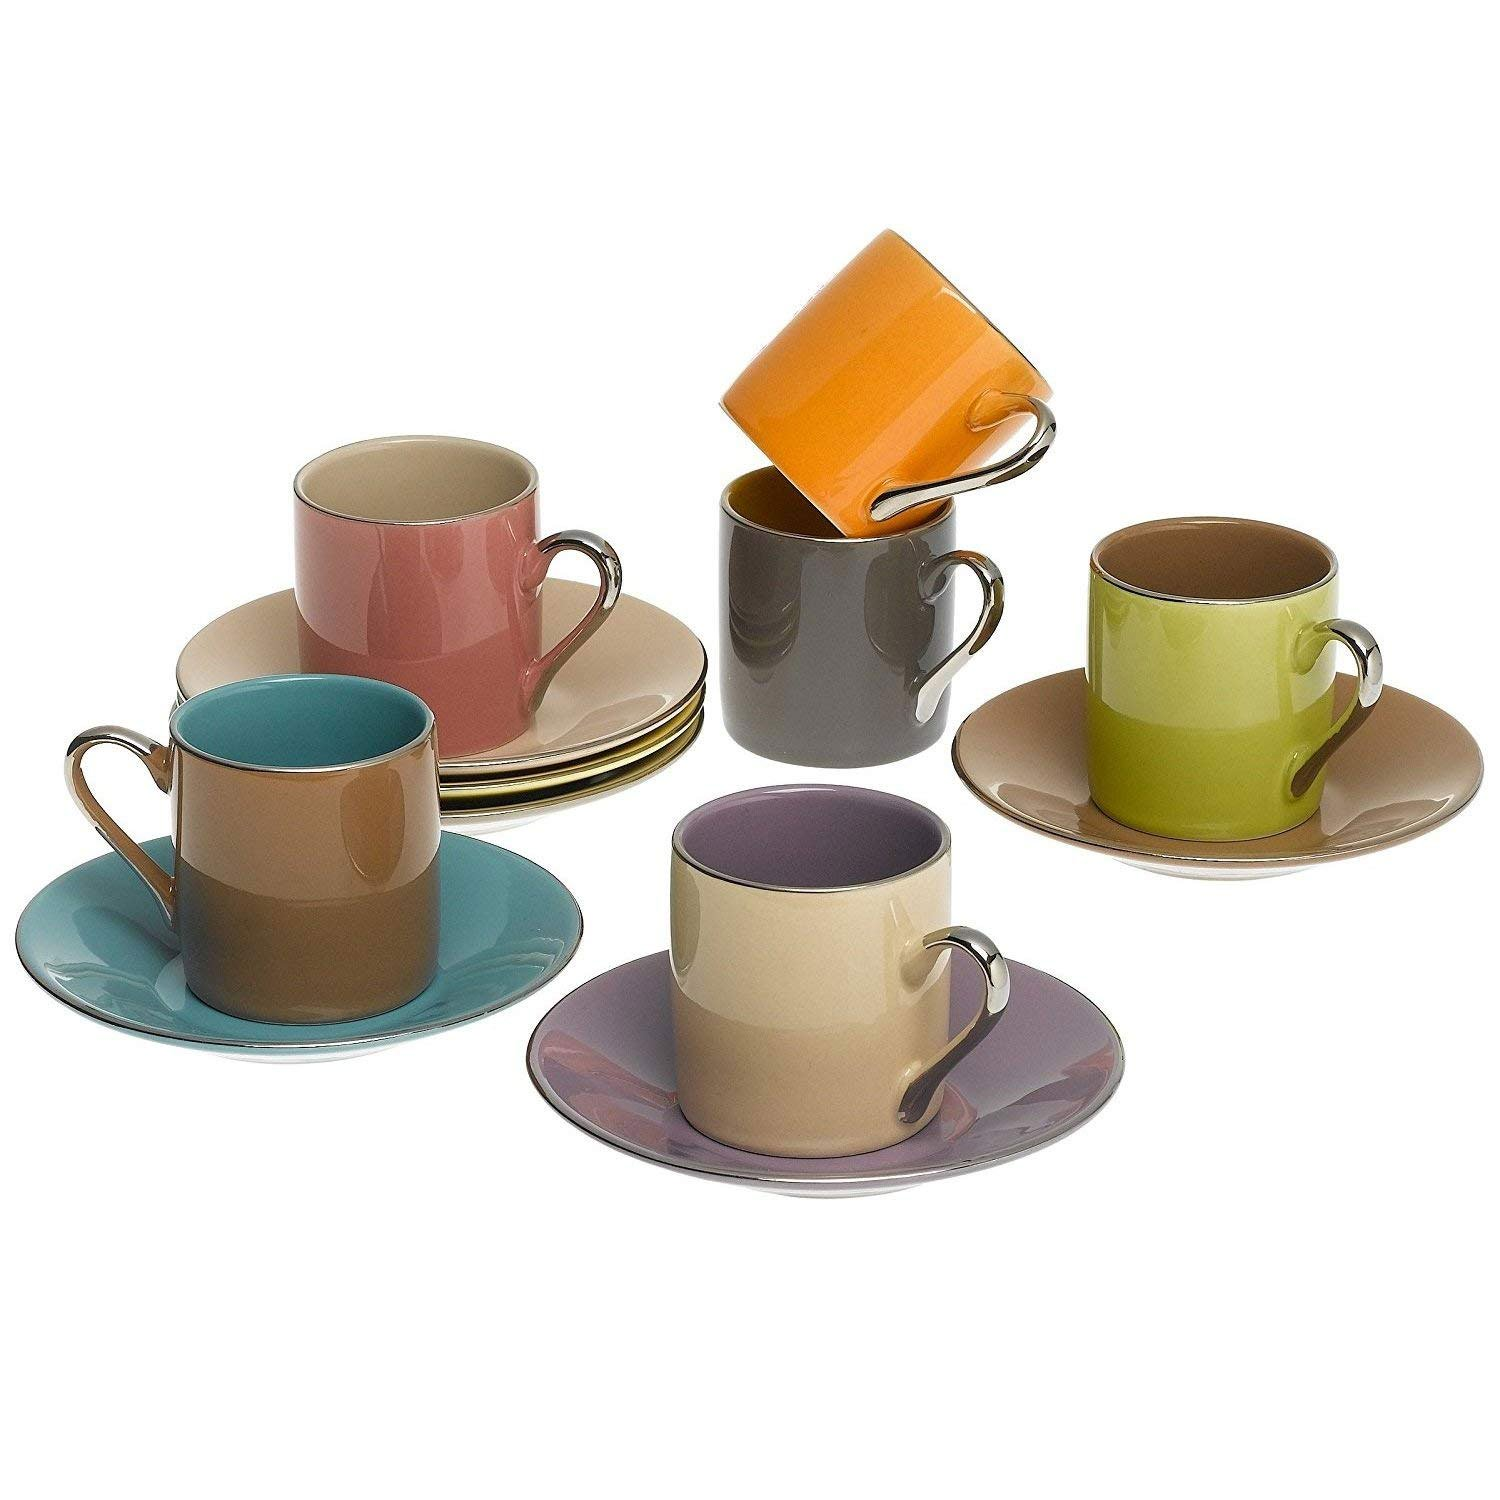 Yedi Houseware Classic Coffee and Tea Siena Teacups and Saucers, Set of 6